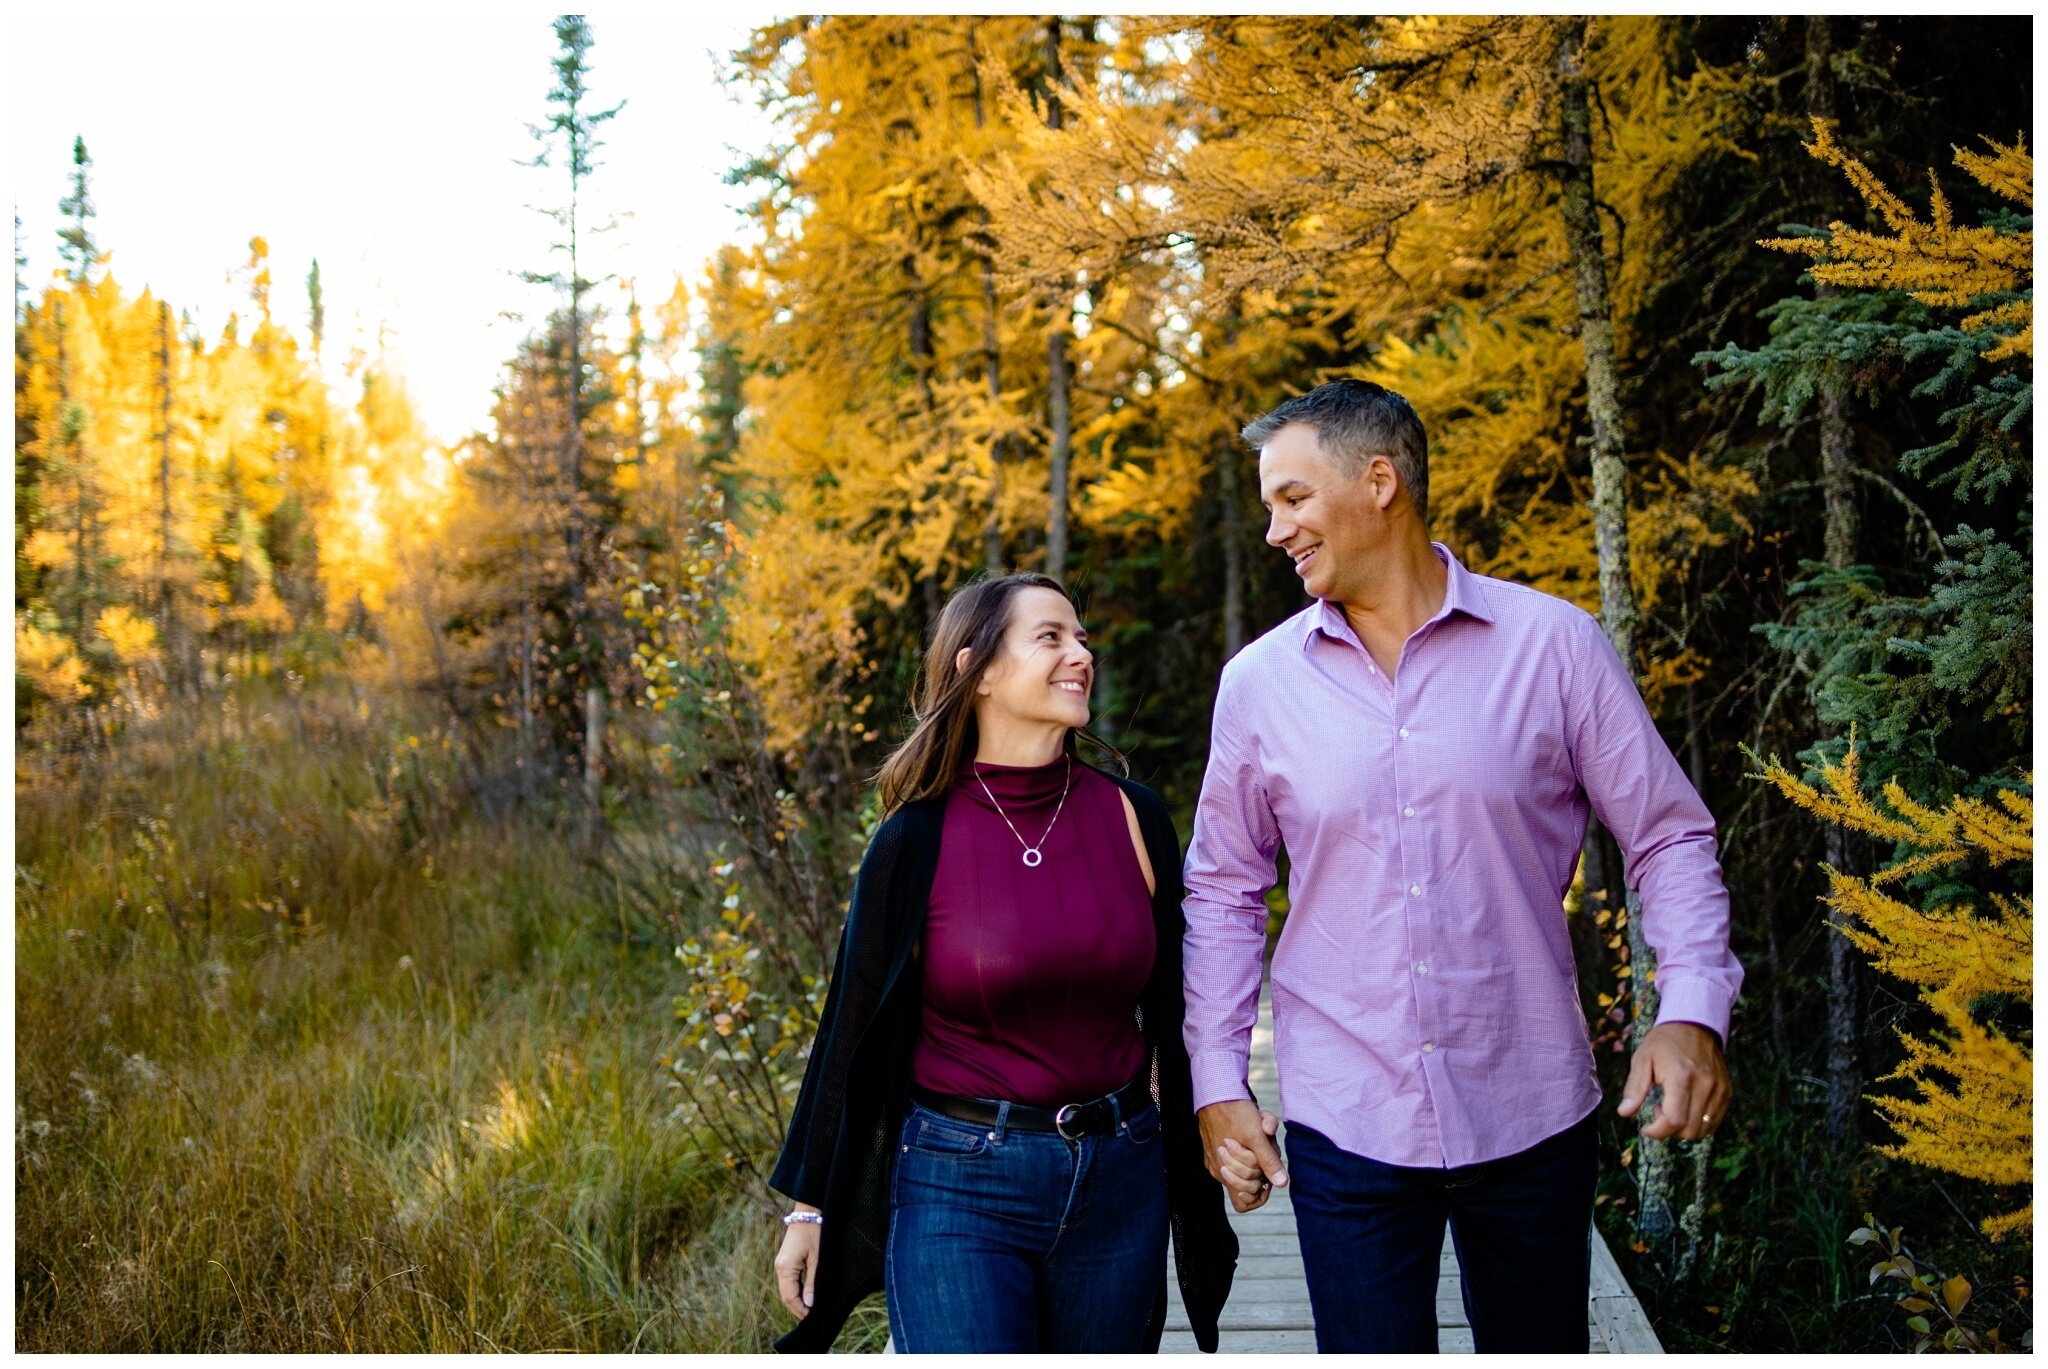 Wagner Natural Area Acheson couples Photographer Alberta  engagement older couple romantic fall photos_0019.jpg